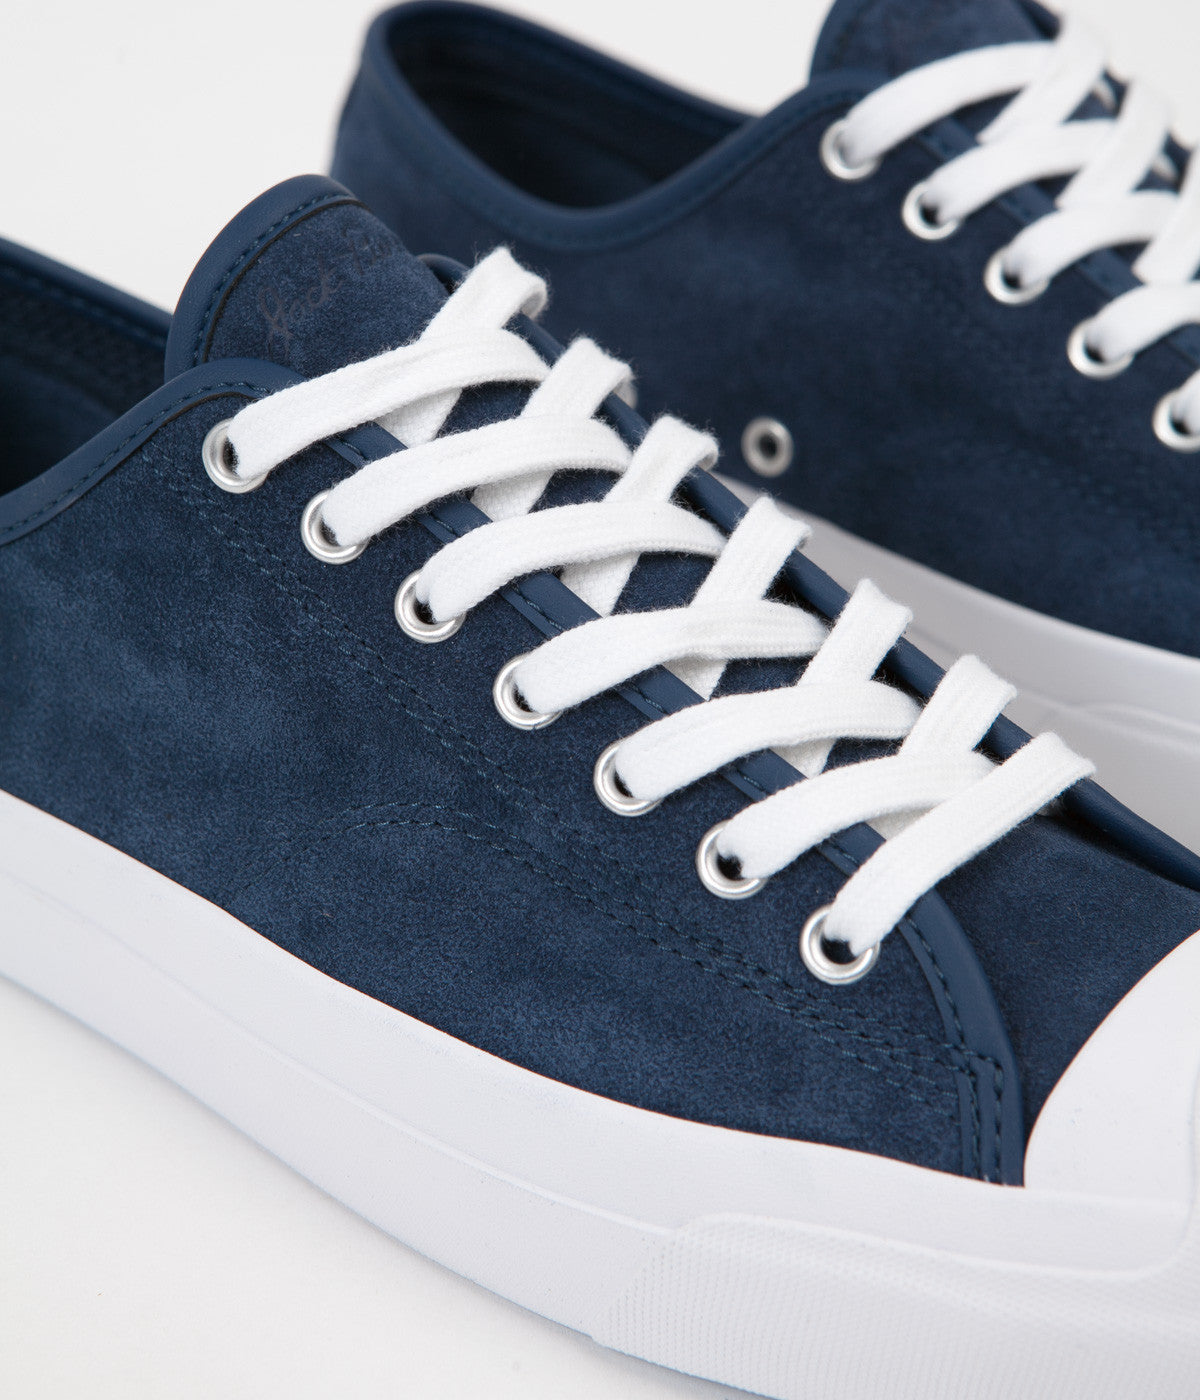 e86a895096 ... Converse x Polar Jack Purcell JP Pro Ox Shoes - Navy / Navy / White ...